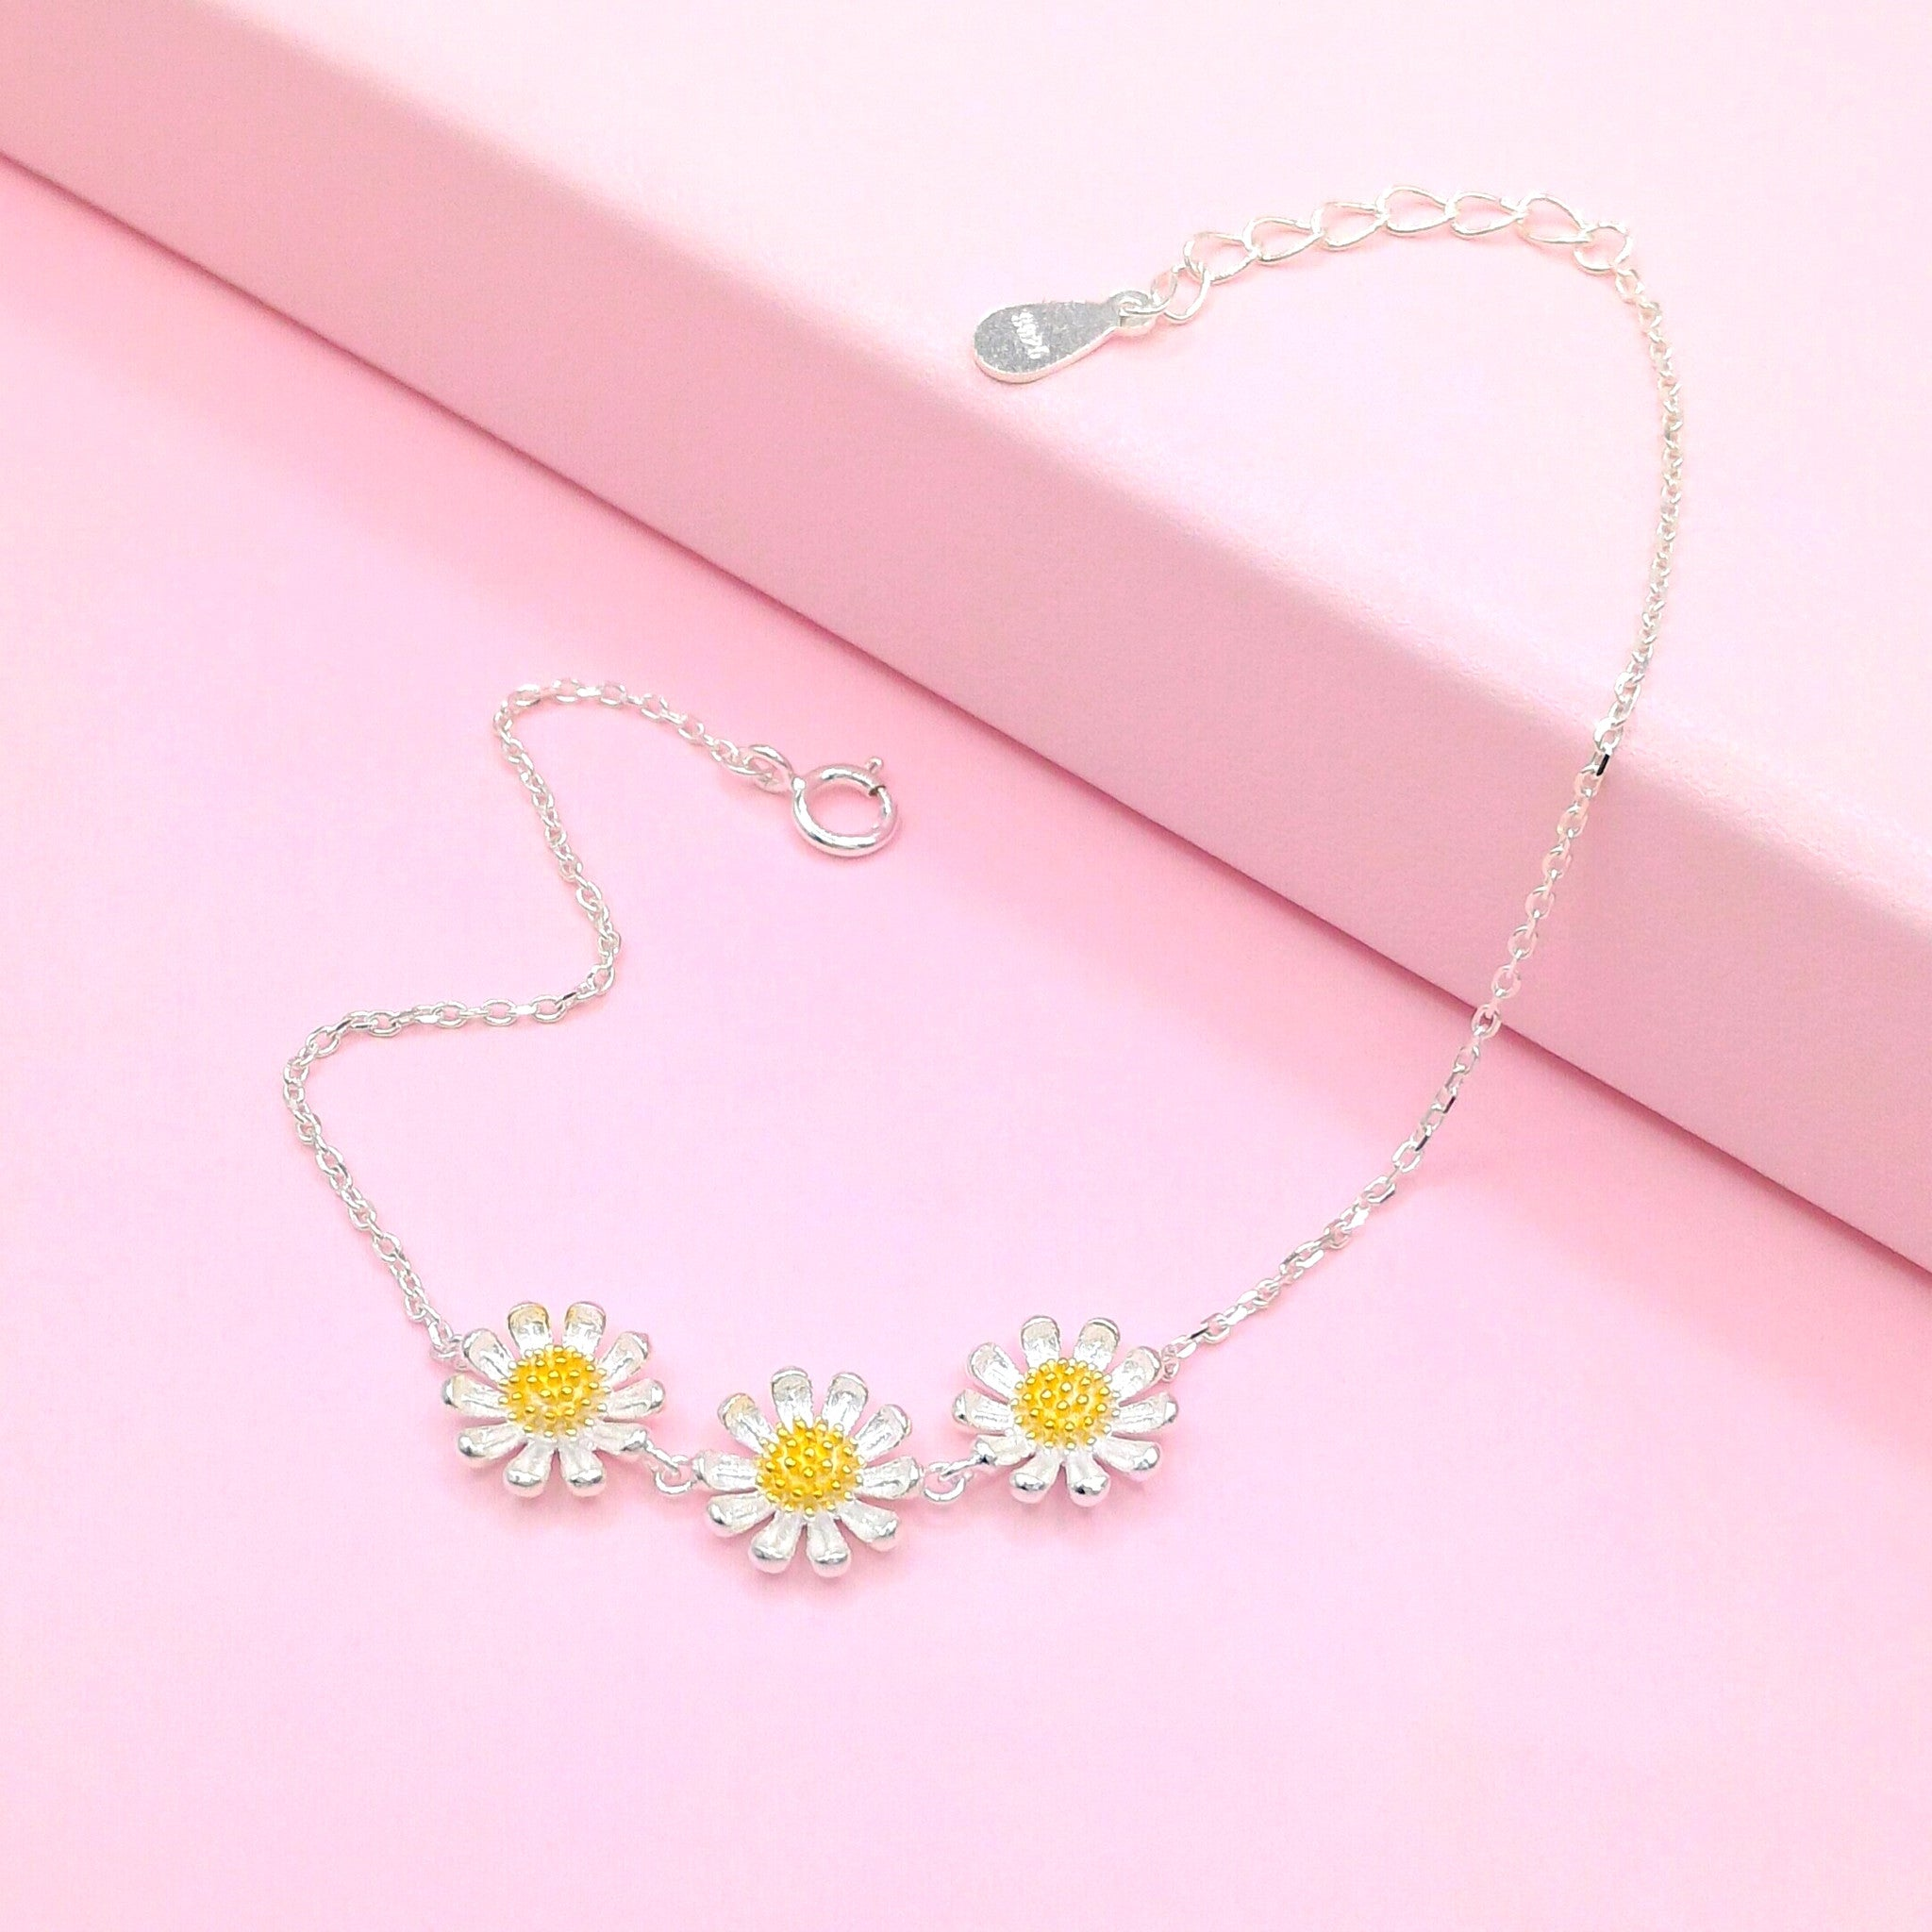 necklace tashi jewelry daisy products